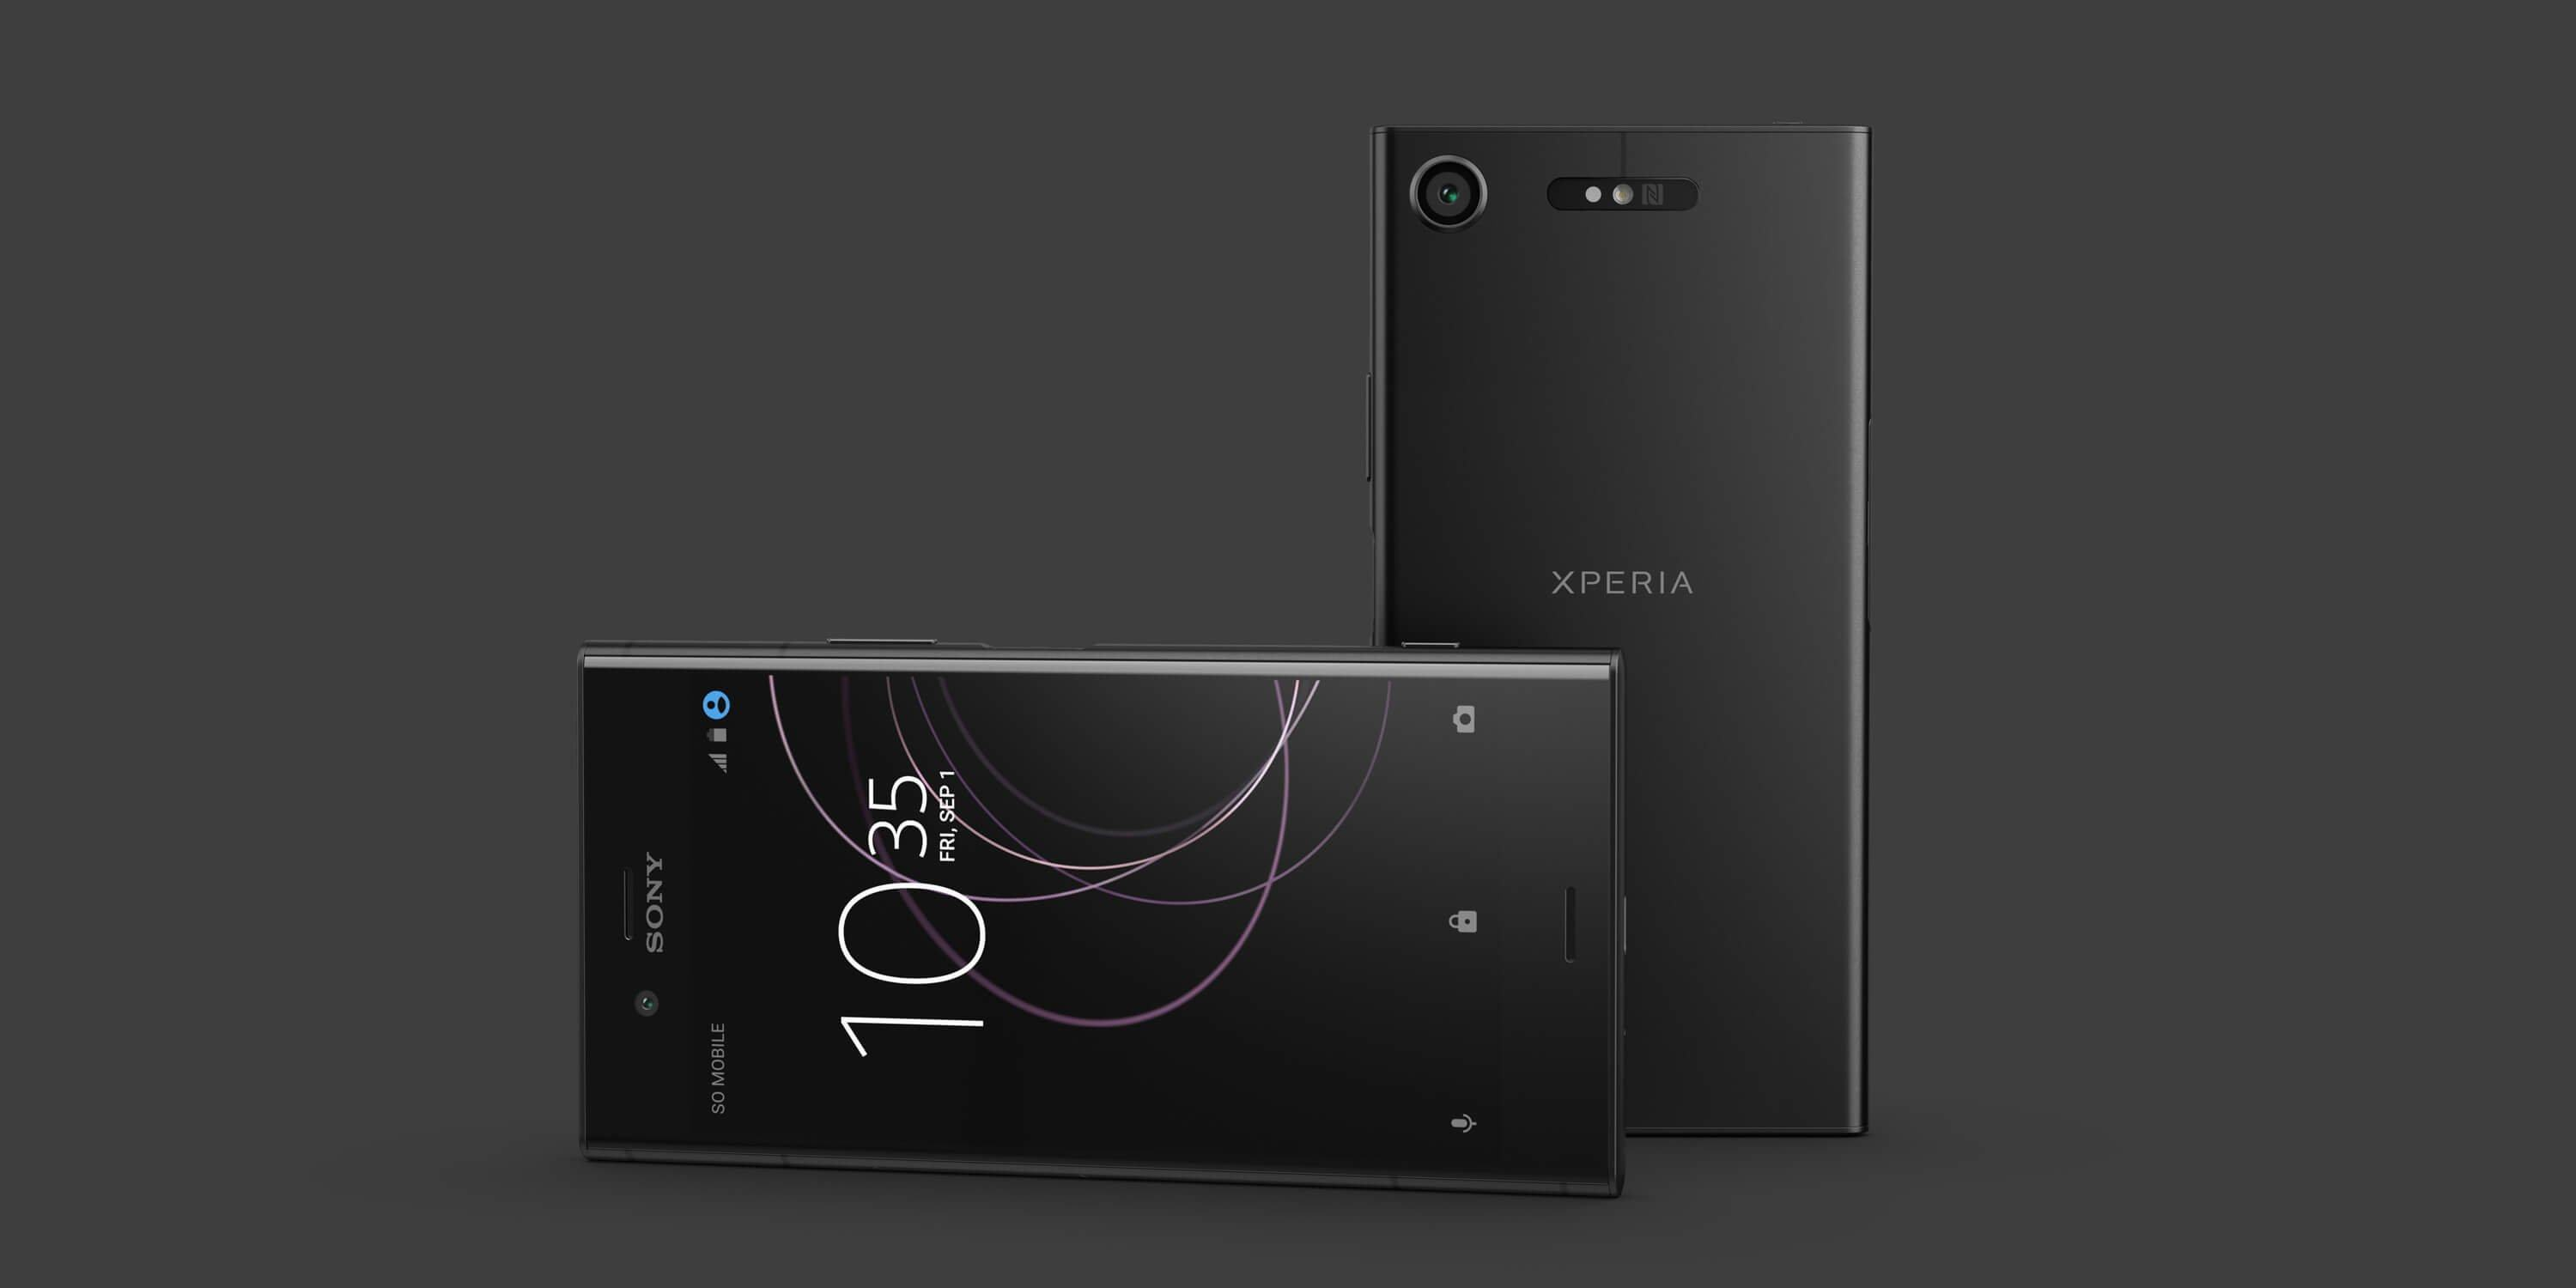 IFA 2017: Sony Xperia XZ1 und XZ1 Compact mit 3D Scan-Funktion 3